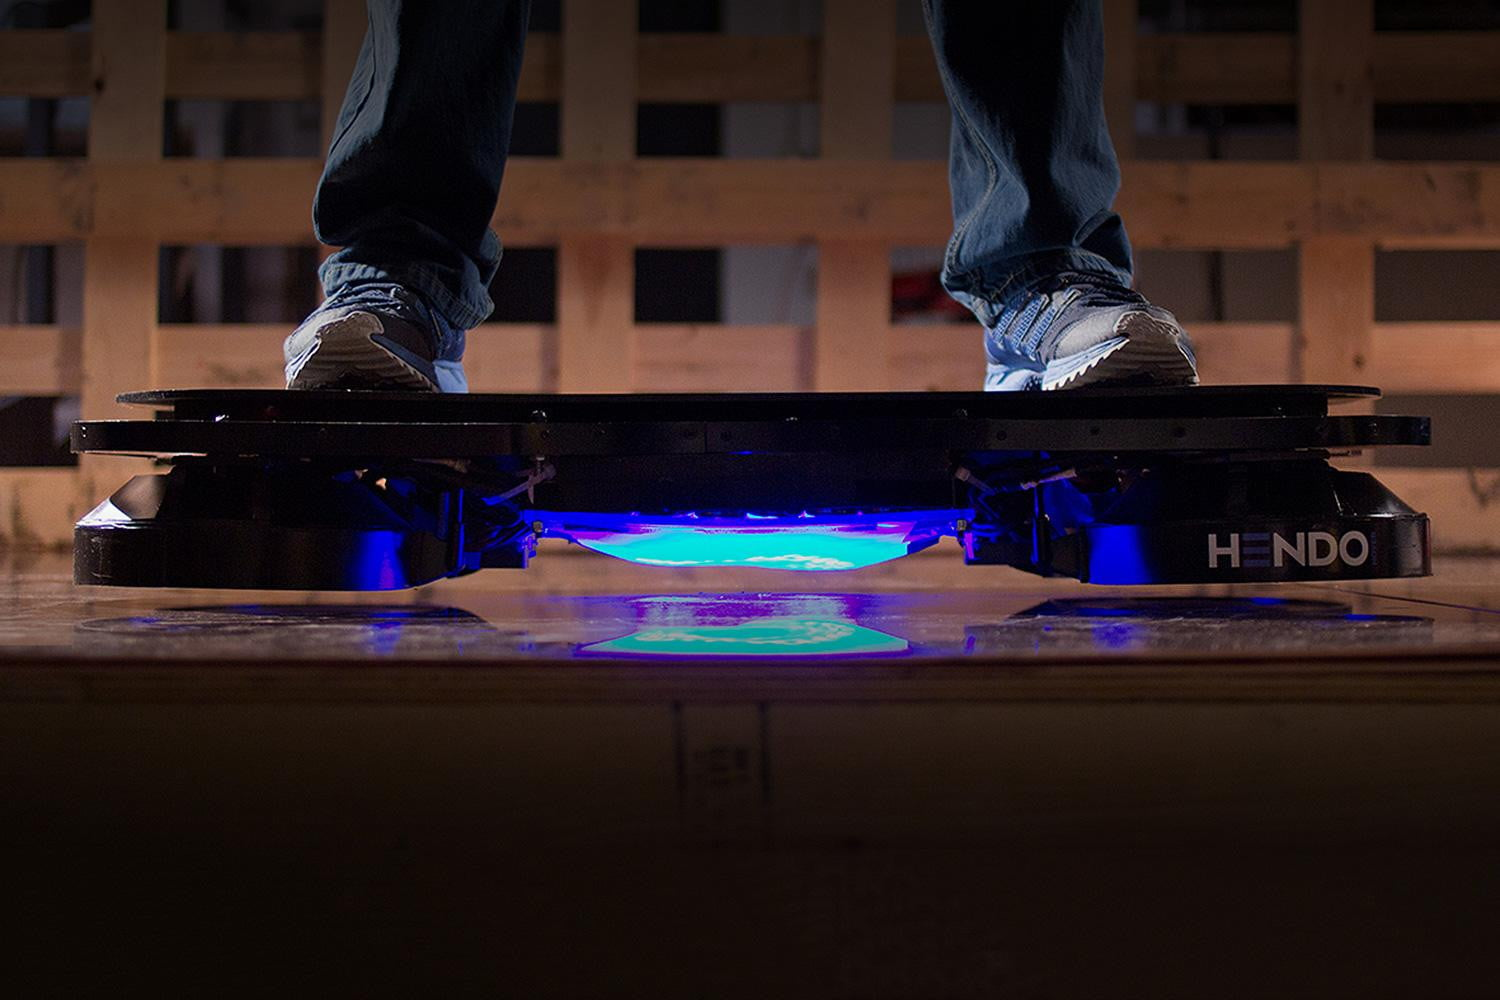 Marty Mcfly S Hoverboard Is Finally Real Thanks To Hendo